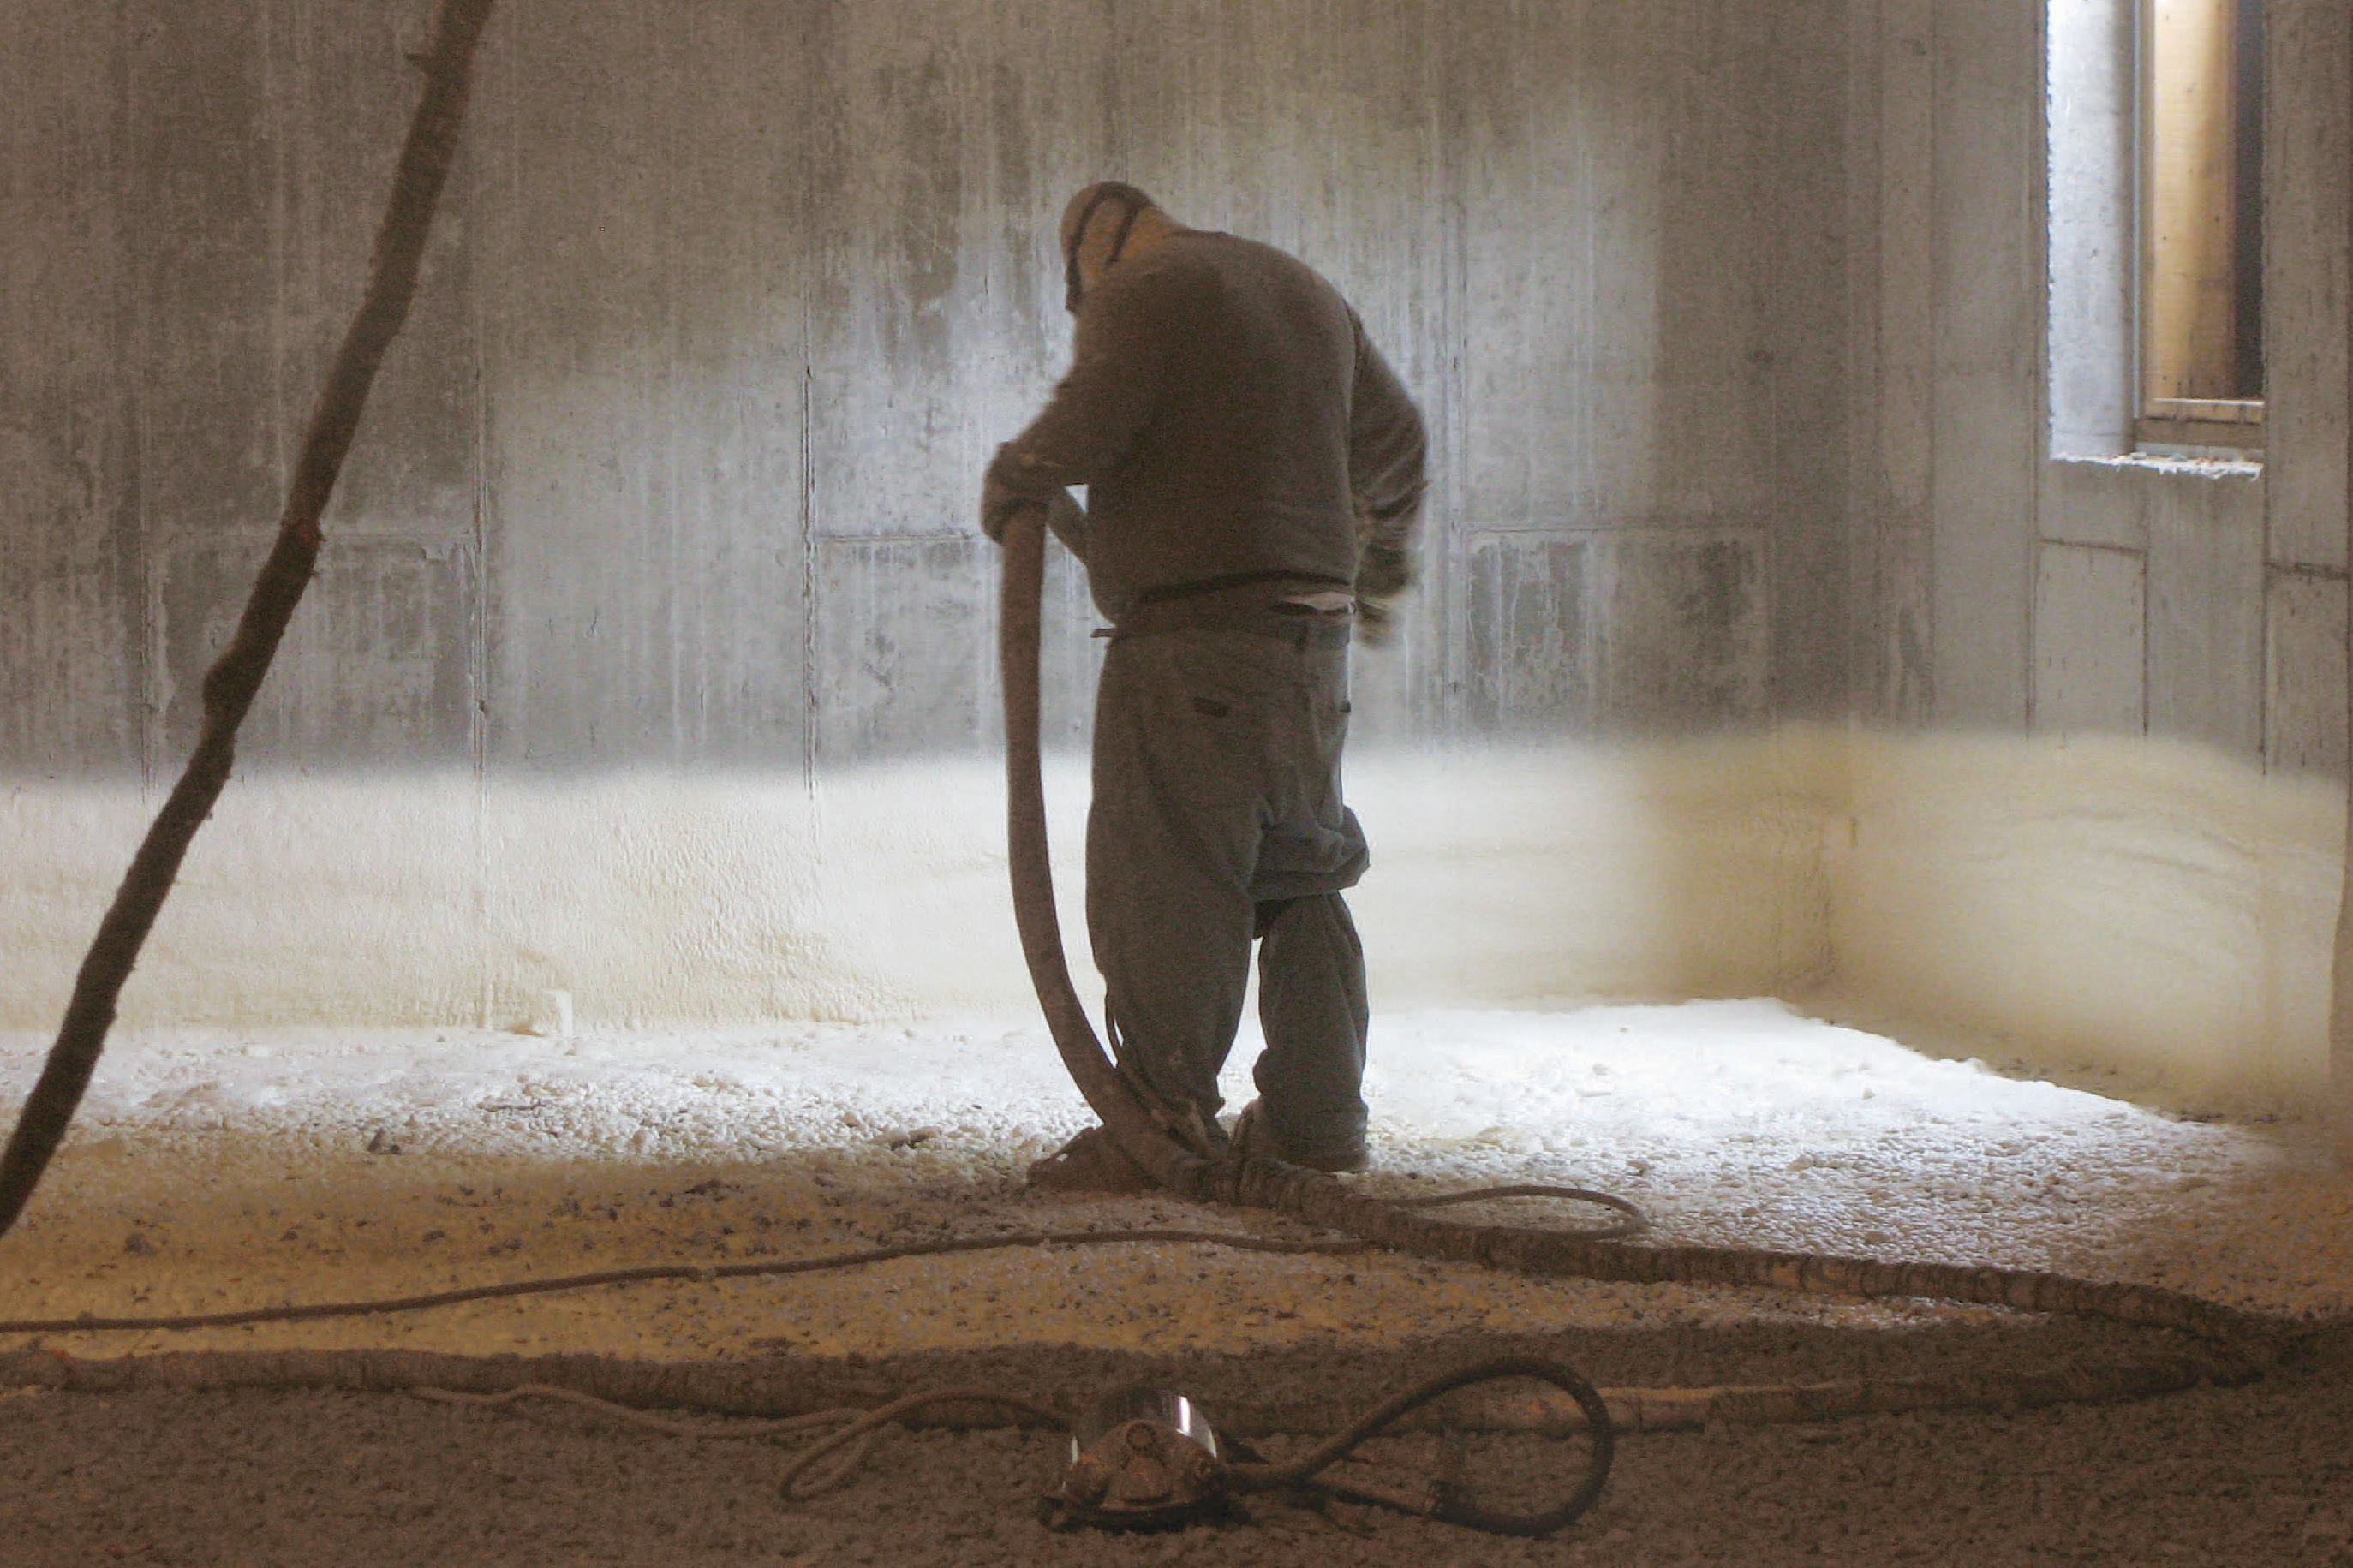 Insulating A Slab With Spray Foam Jlc Online